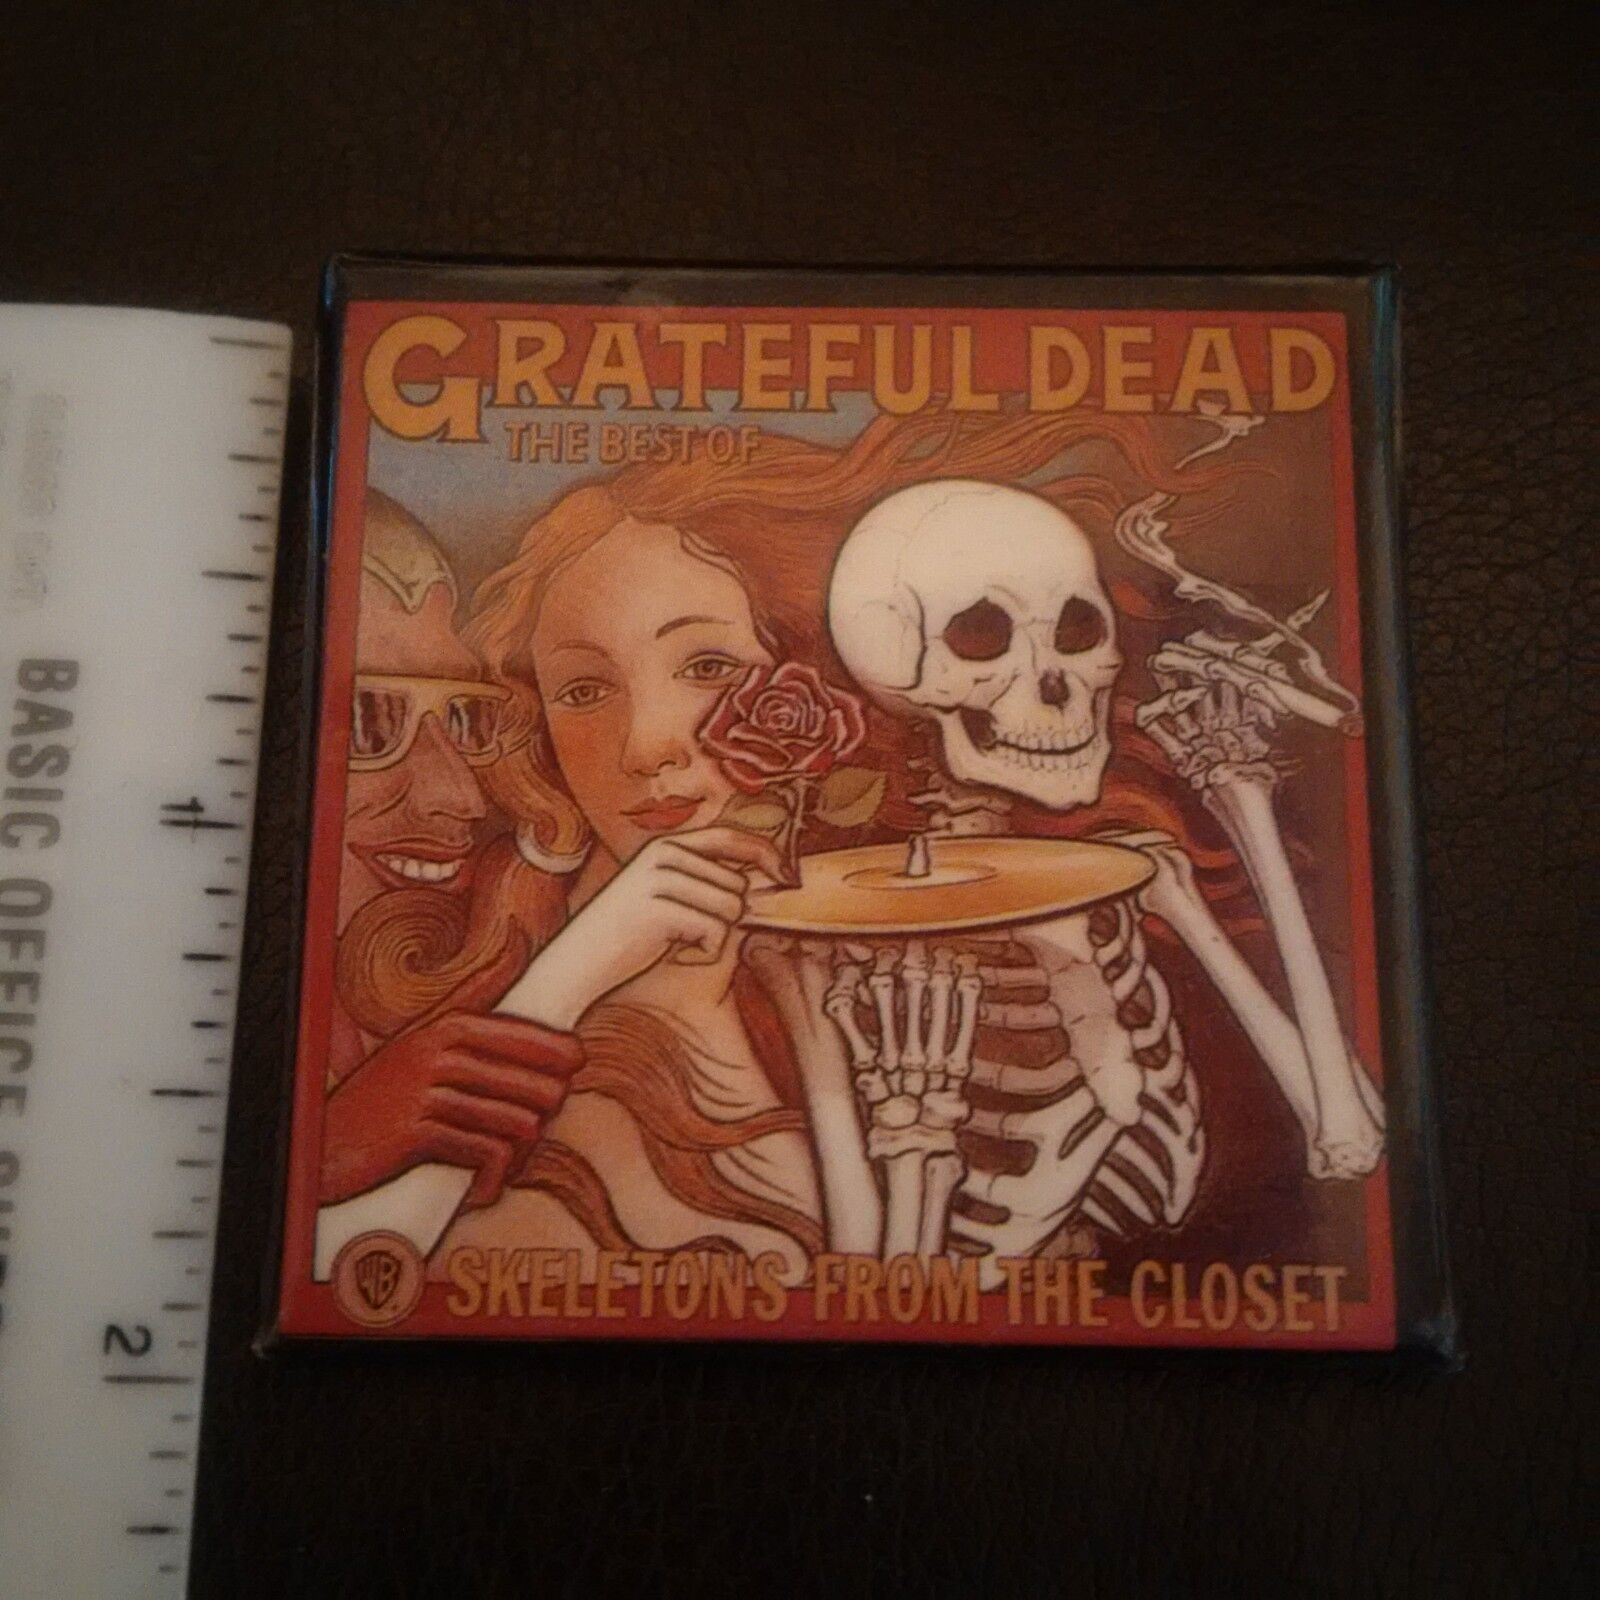 Grateful Dead Skeletons From The Closet Uk Square Promo Pin Rare 1970 S